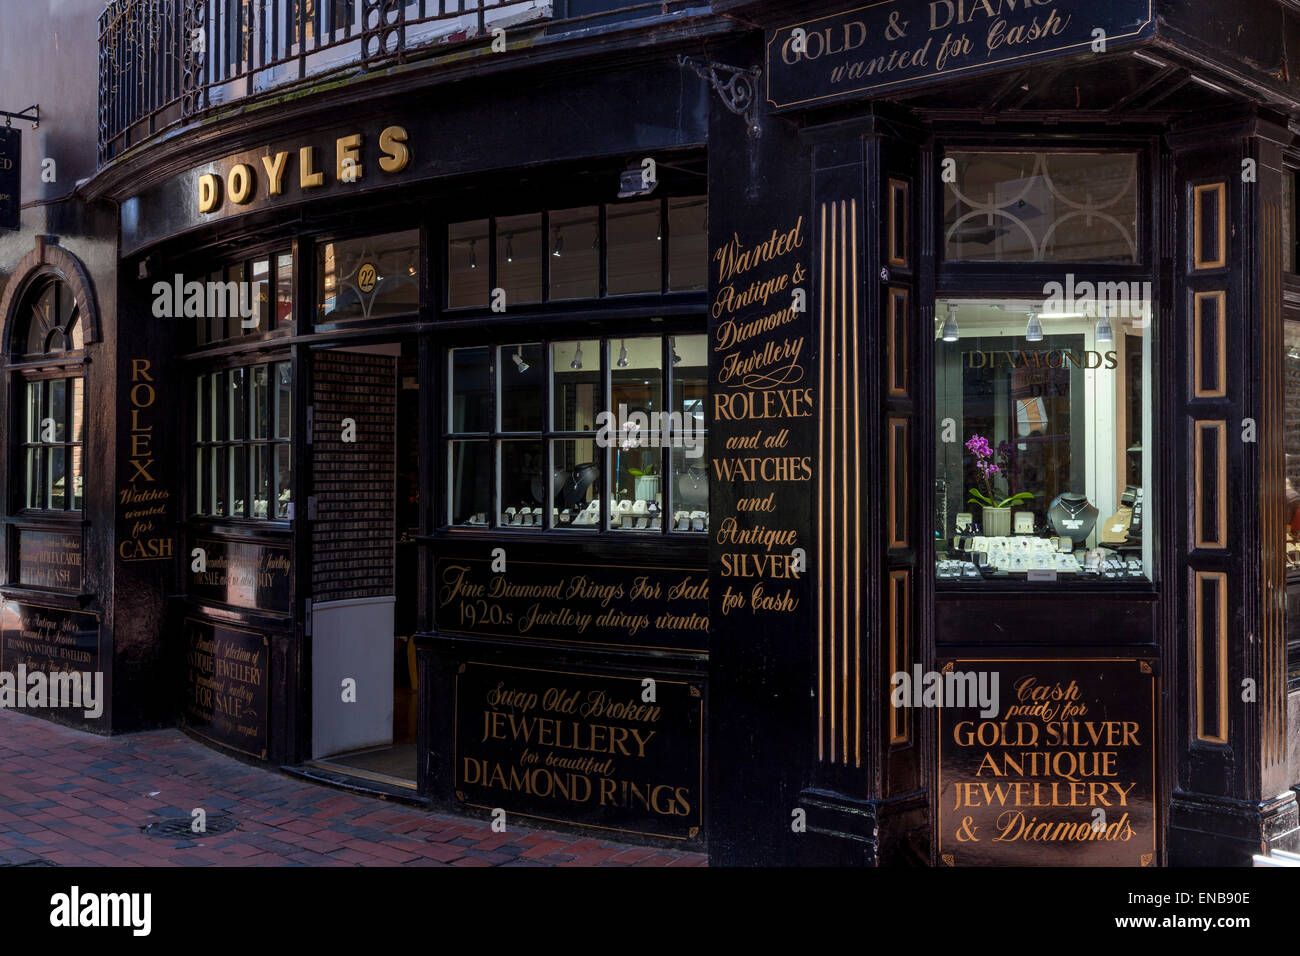 Doyles antique jewellery shop in the lanes brighton sussex uk doyles antique jewellery shop in the lanes brighton sussex uk aloadofball Choice Image